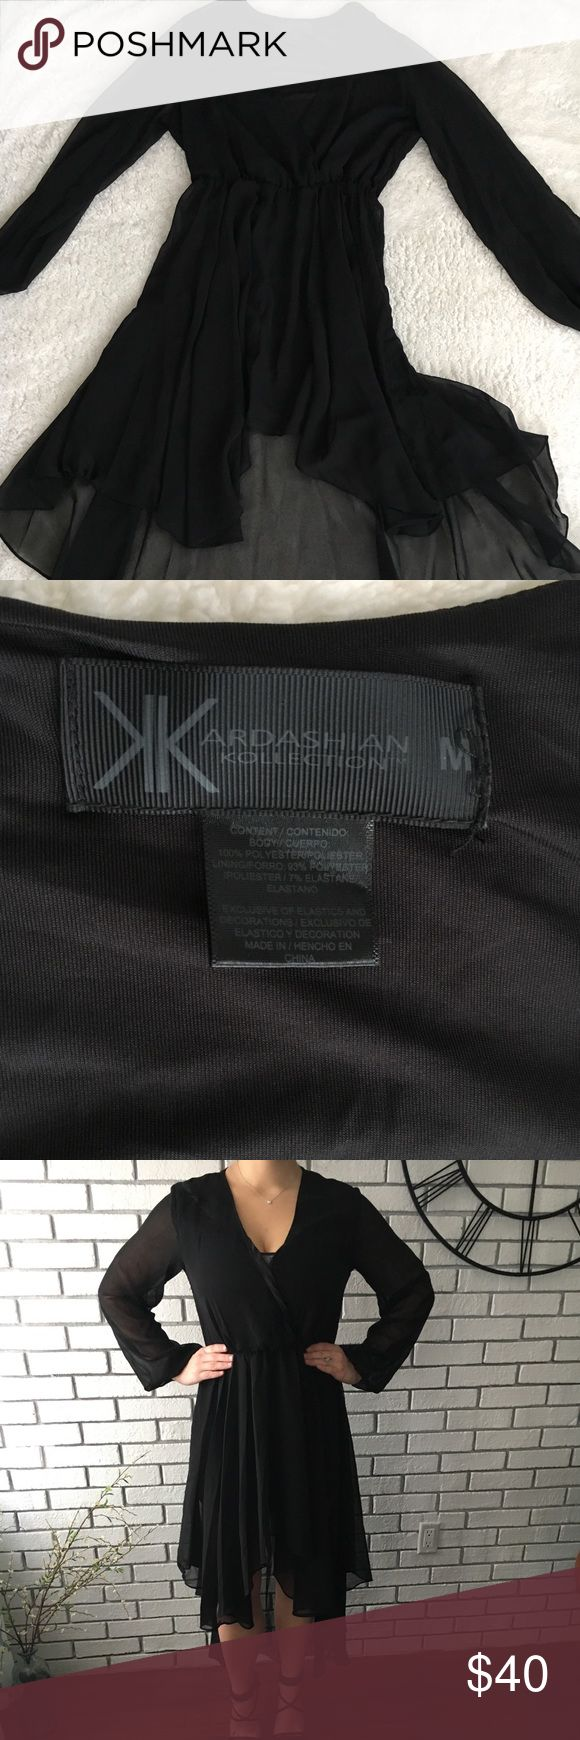 Kardashian Kollection High Low Sheer Dress Black high low sheer dress, flowy long sleeves, elastic at the waste and wrists, only worn once! Kardashian Kollection Dresses High Low